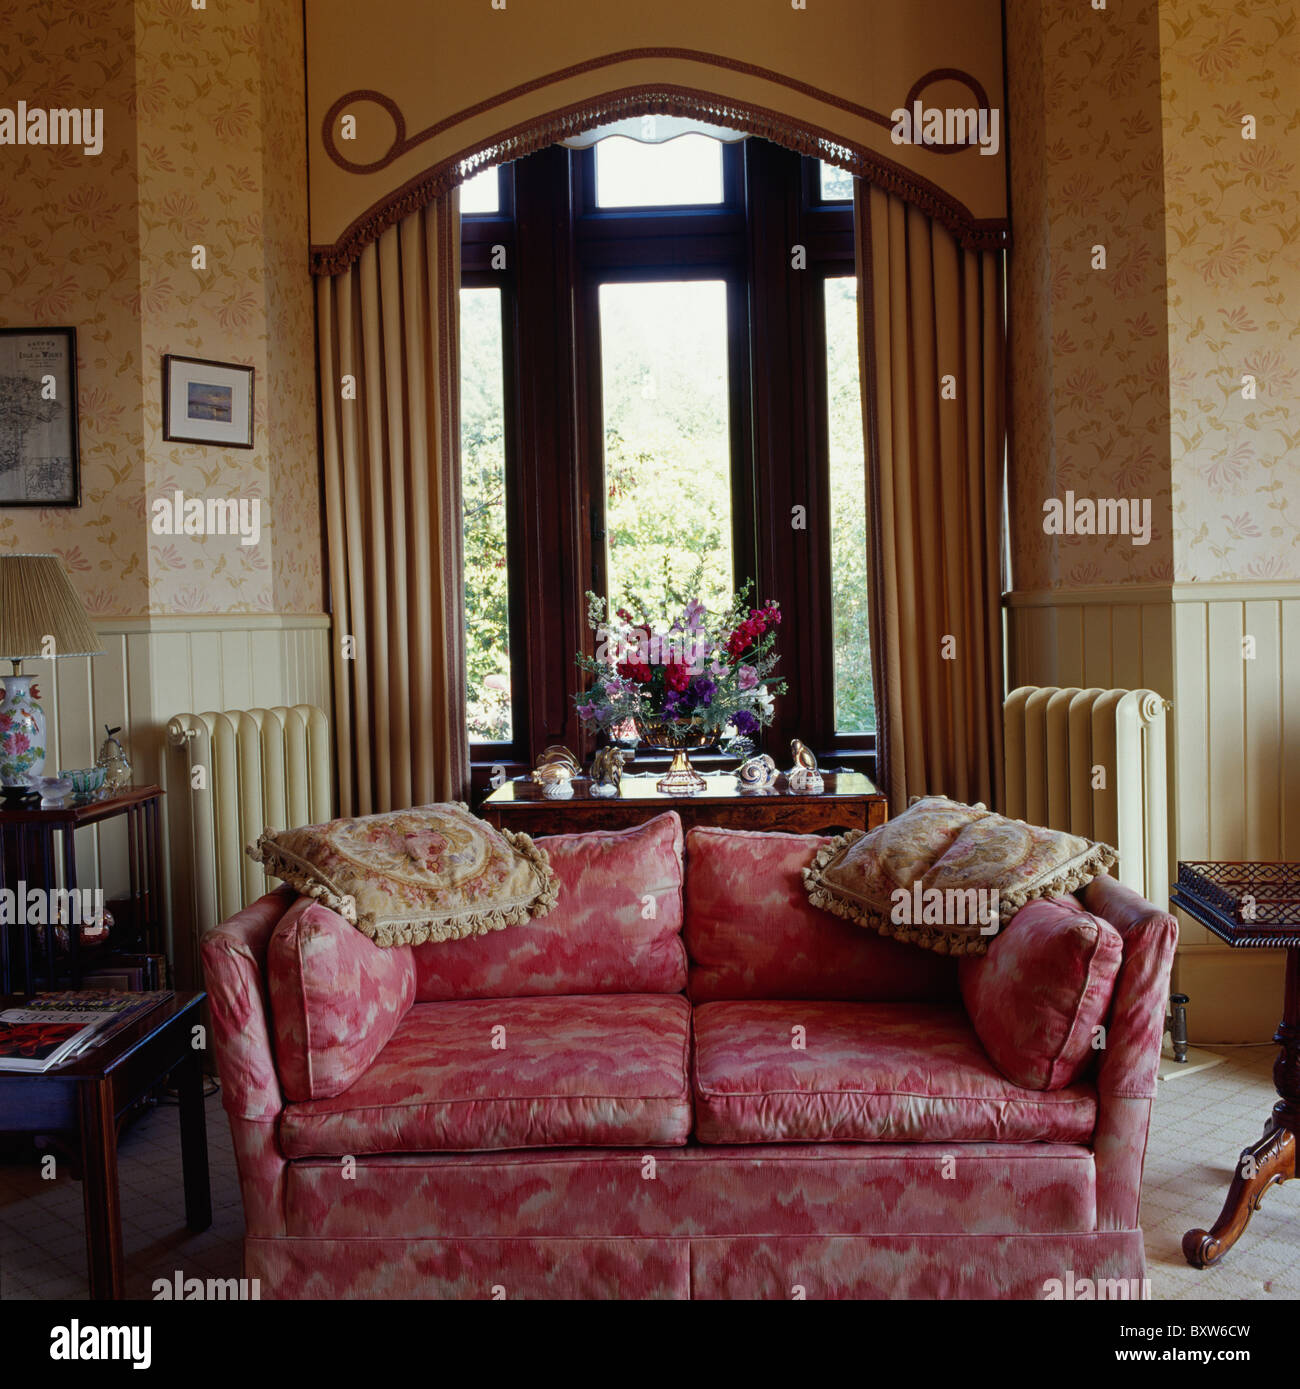 Patterned Red Sofa In Front Of Tall Window In Country